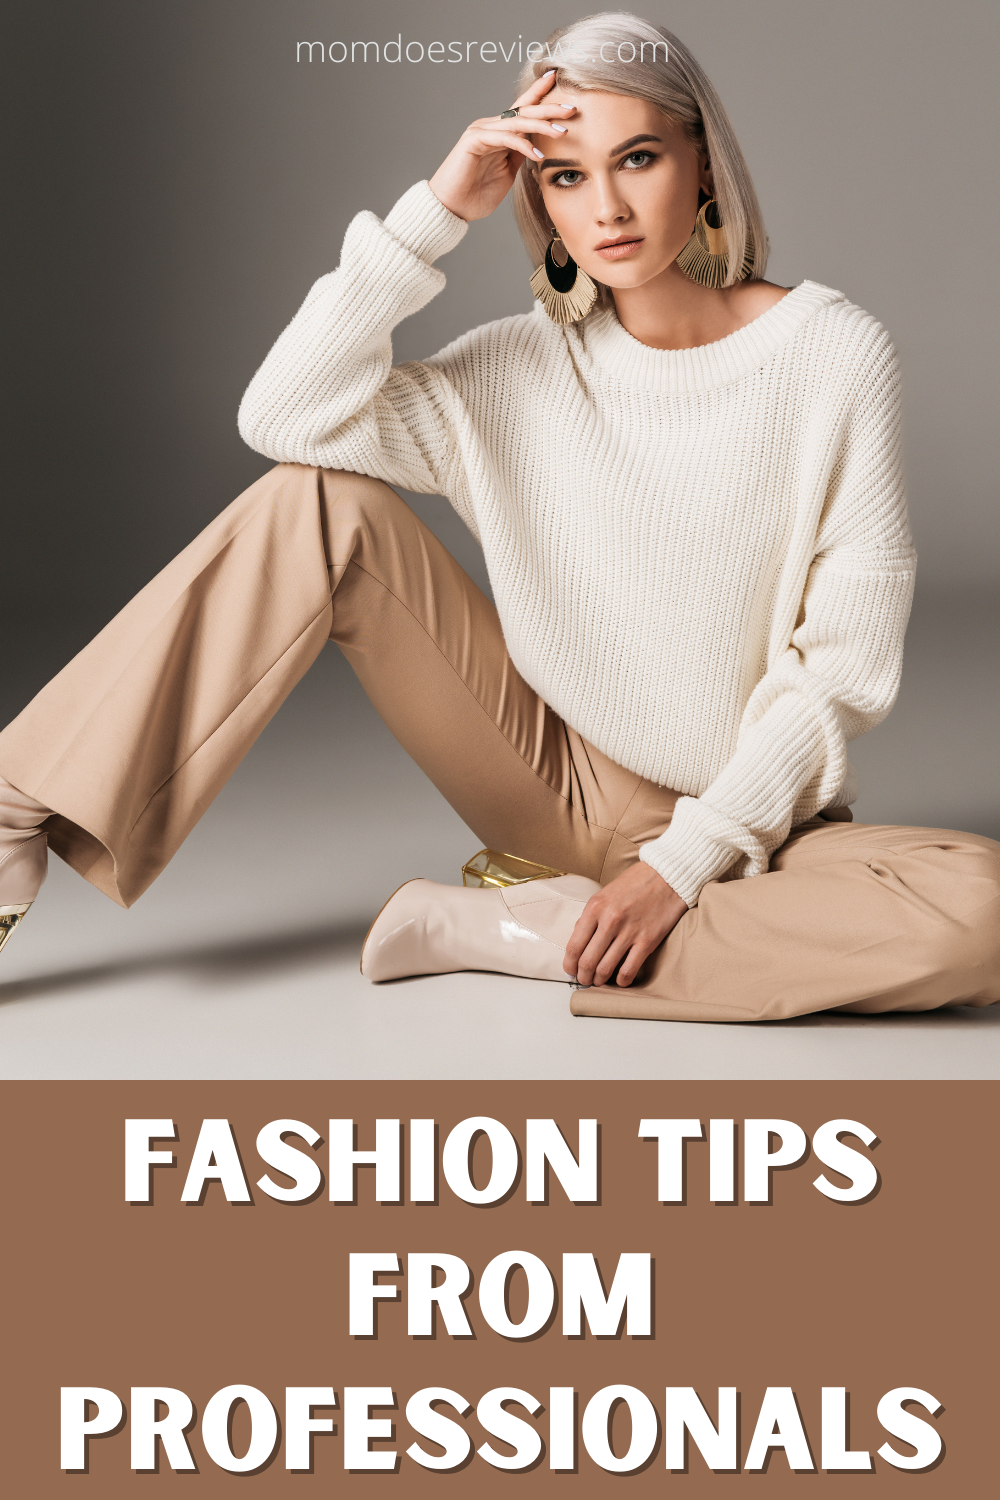 Dress Up With These Tips From Fashion Professionals